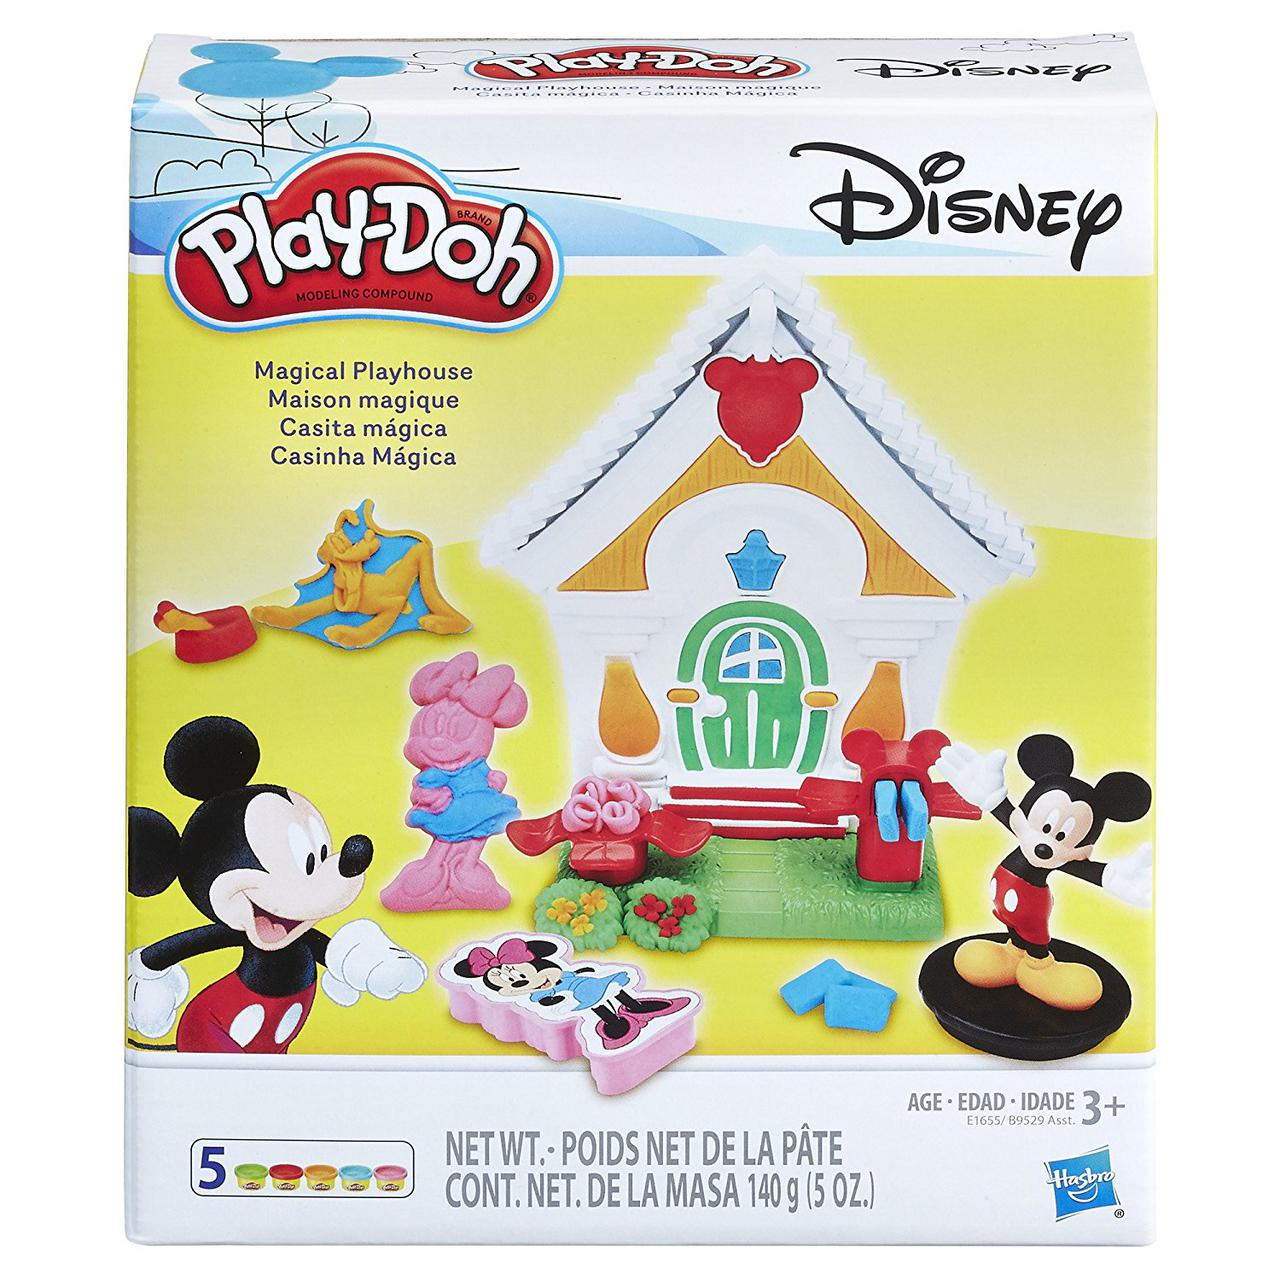 Play-Doh Микки маус Волшебный театр больница Disney Mickey Mouse Magical Playhouse